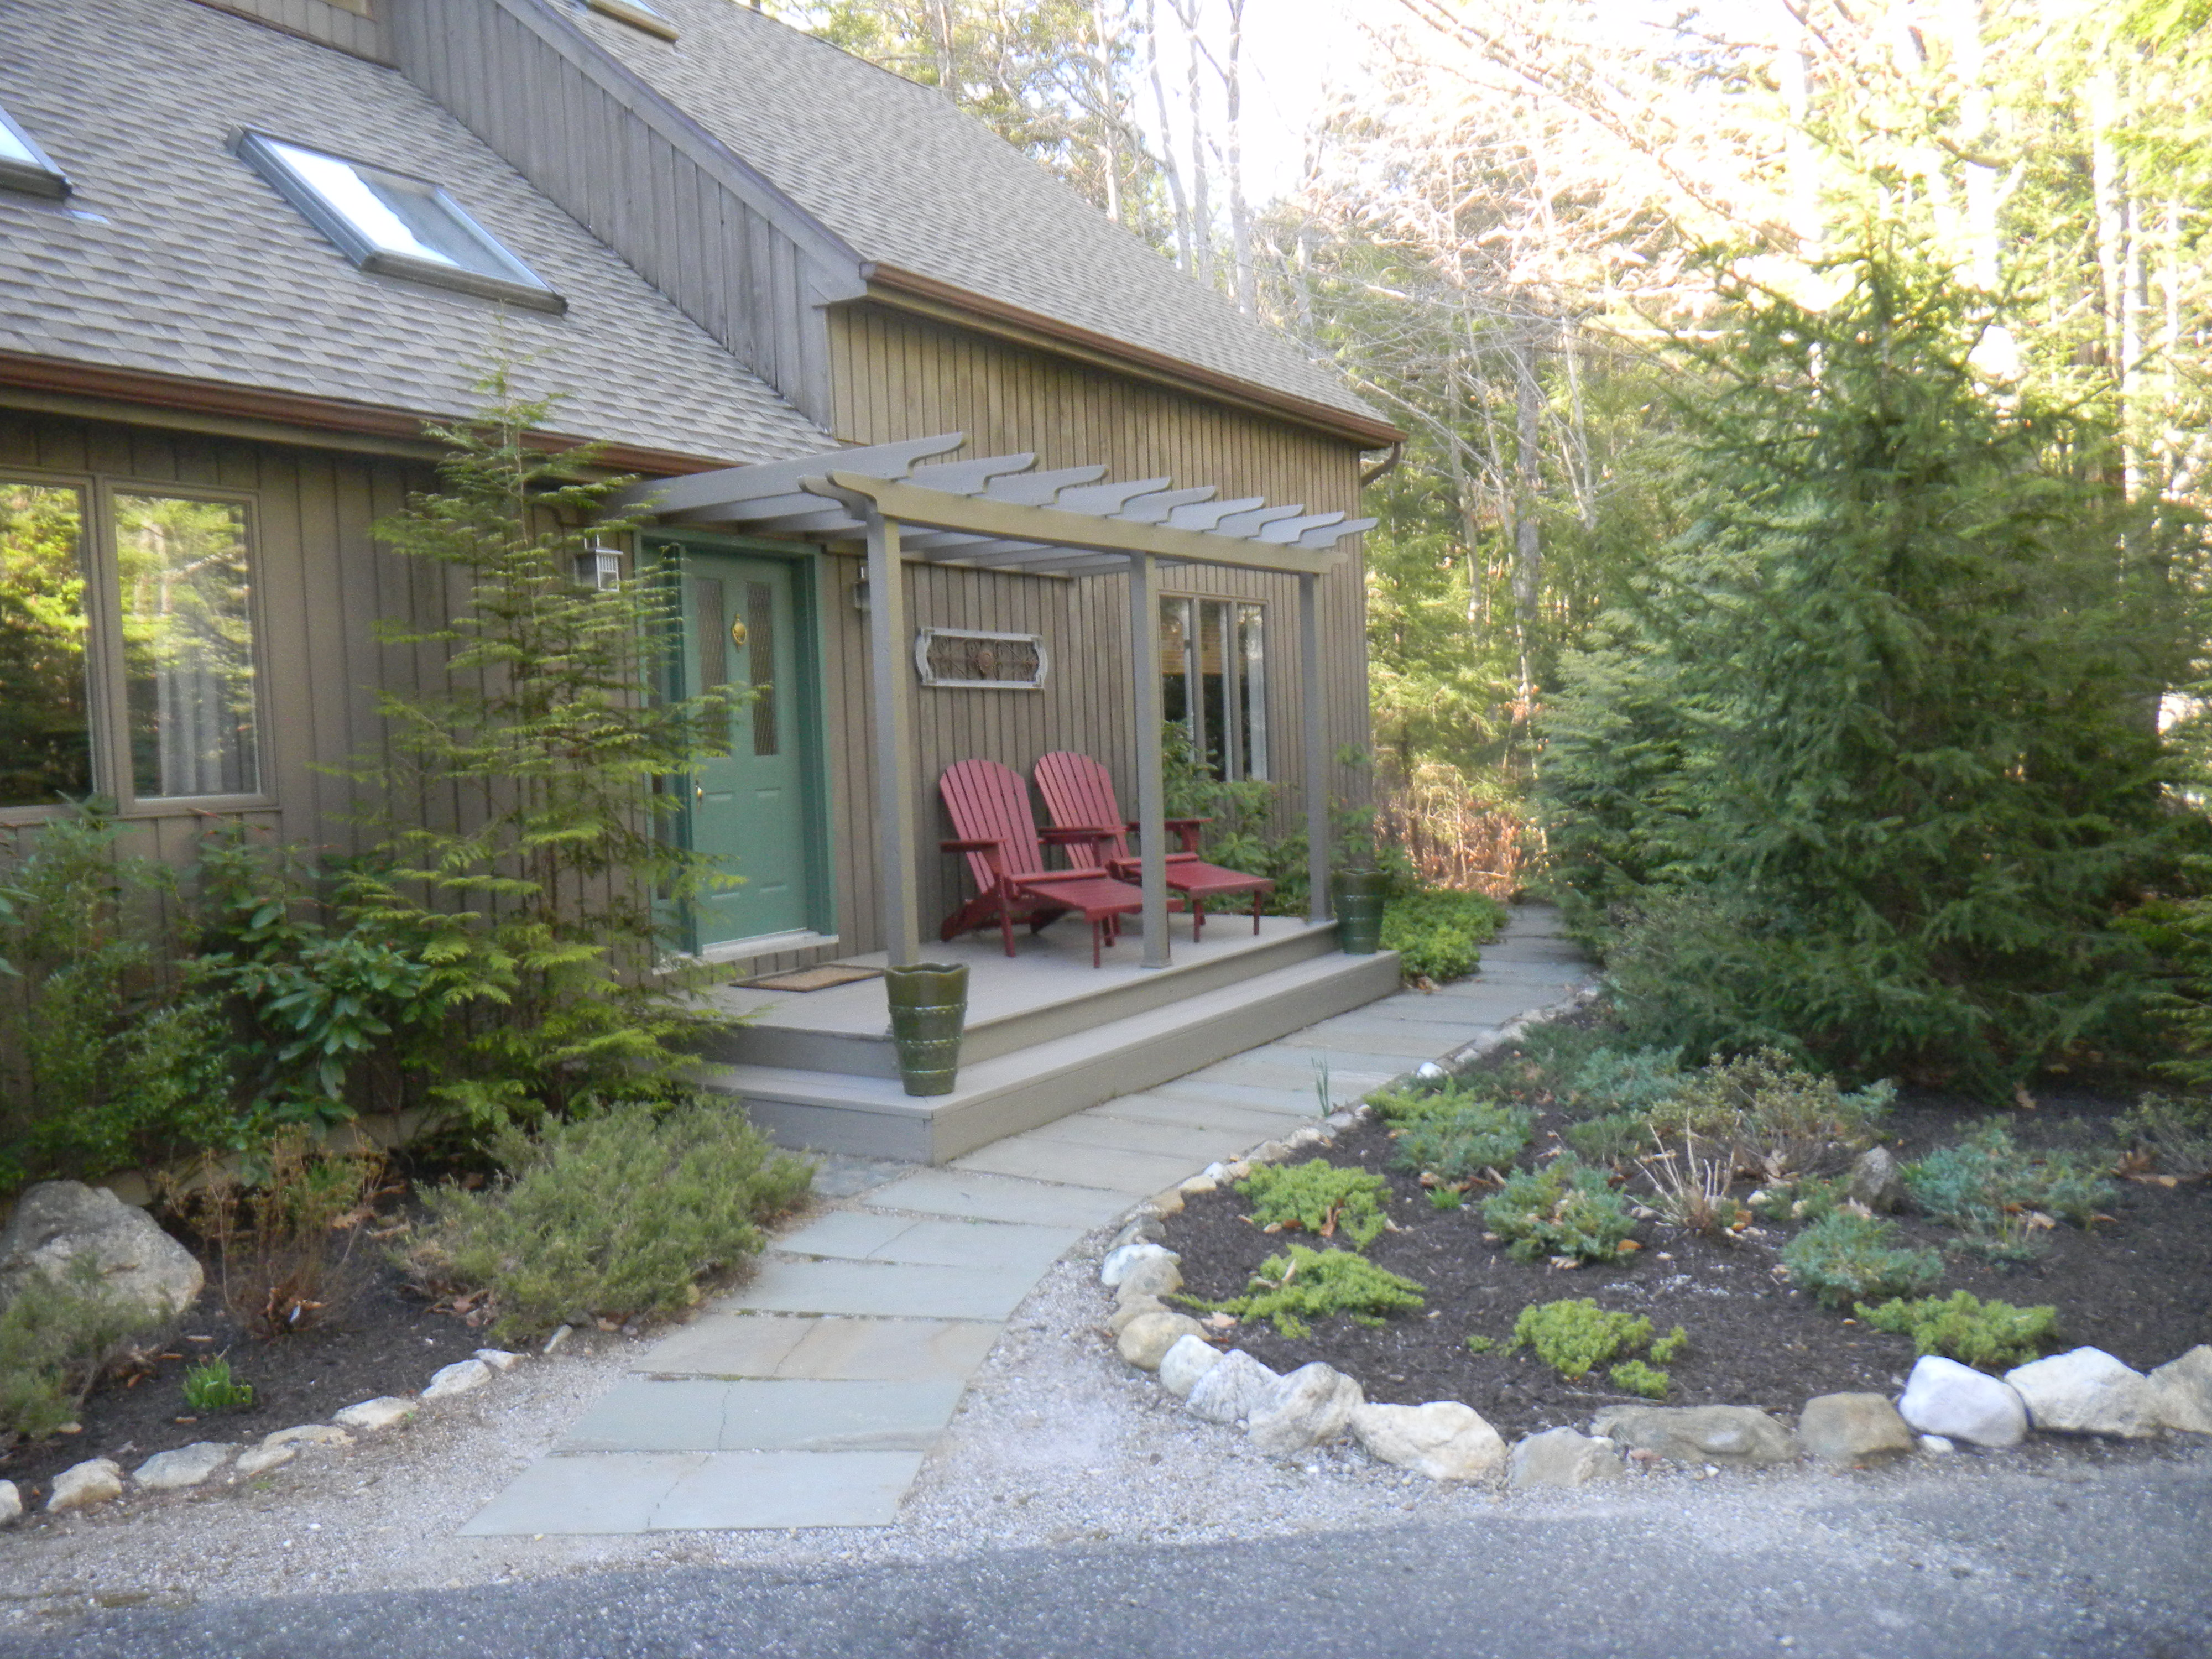 Additional photo for property listing at Charming Country Home with Open Floor Plan 64 Paxton Ct Goshen, Connecticut 06756 United States